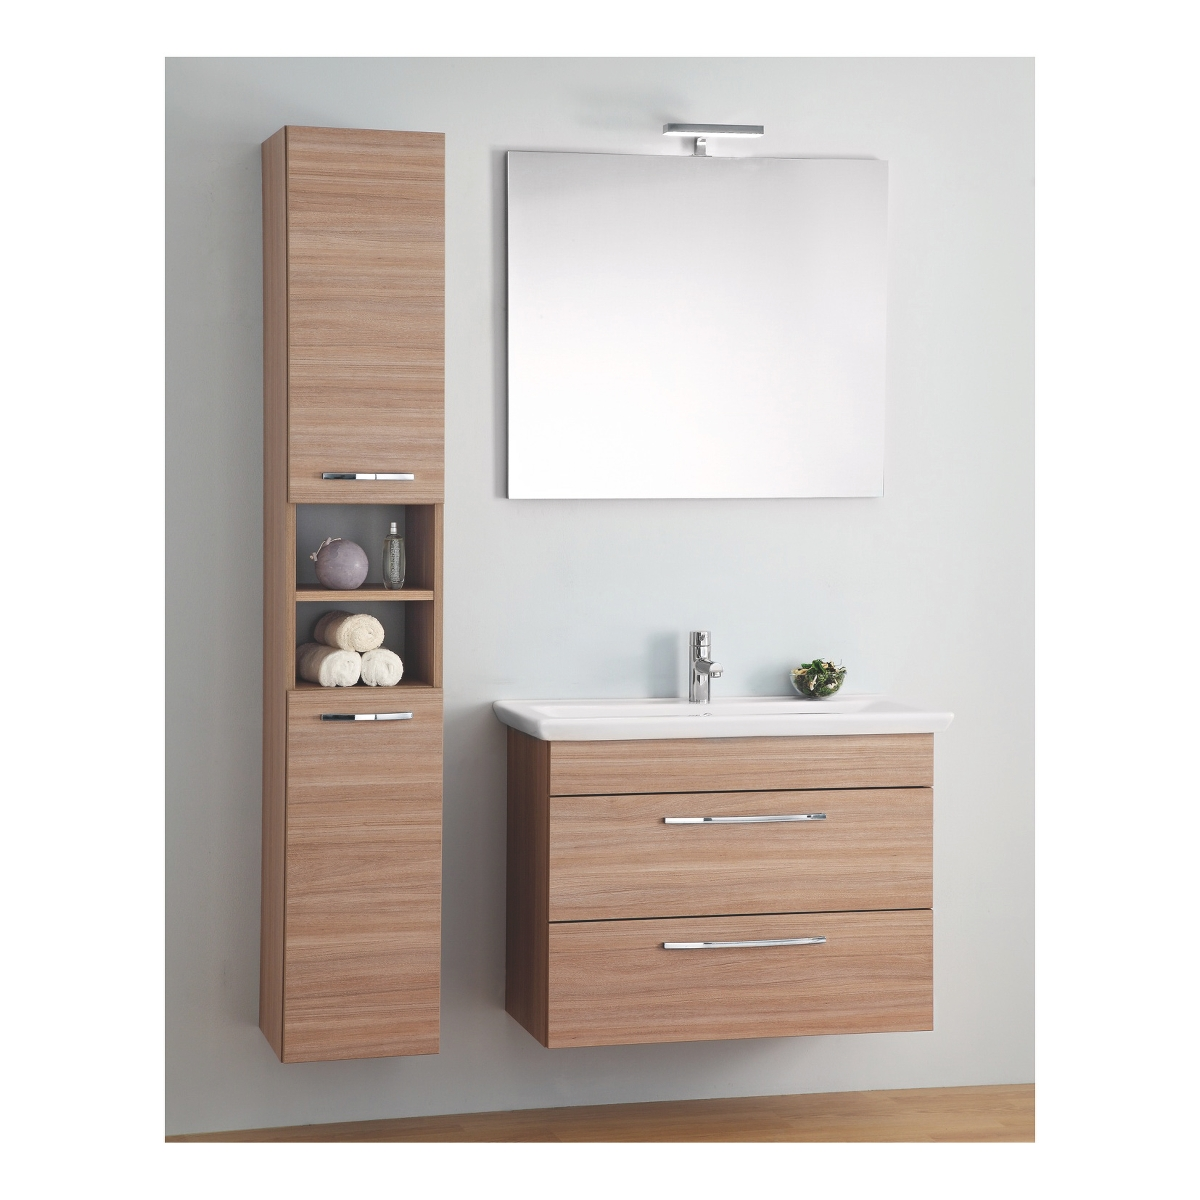 Leroy merlin mobile bagno gi 115 mobili bagno bathrooms pinterest wood bathroom and - Armadietto bagno leroy merlin ...